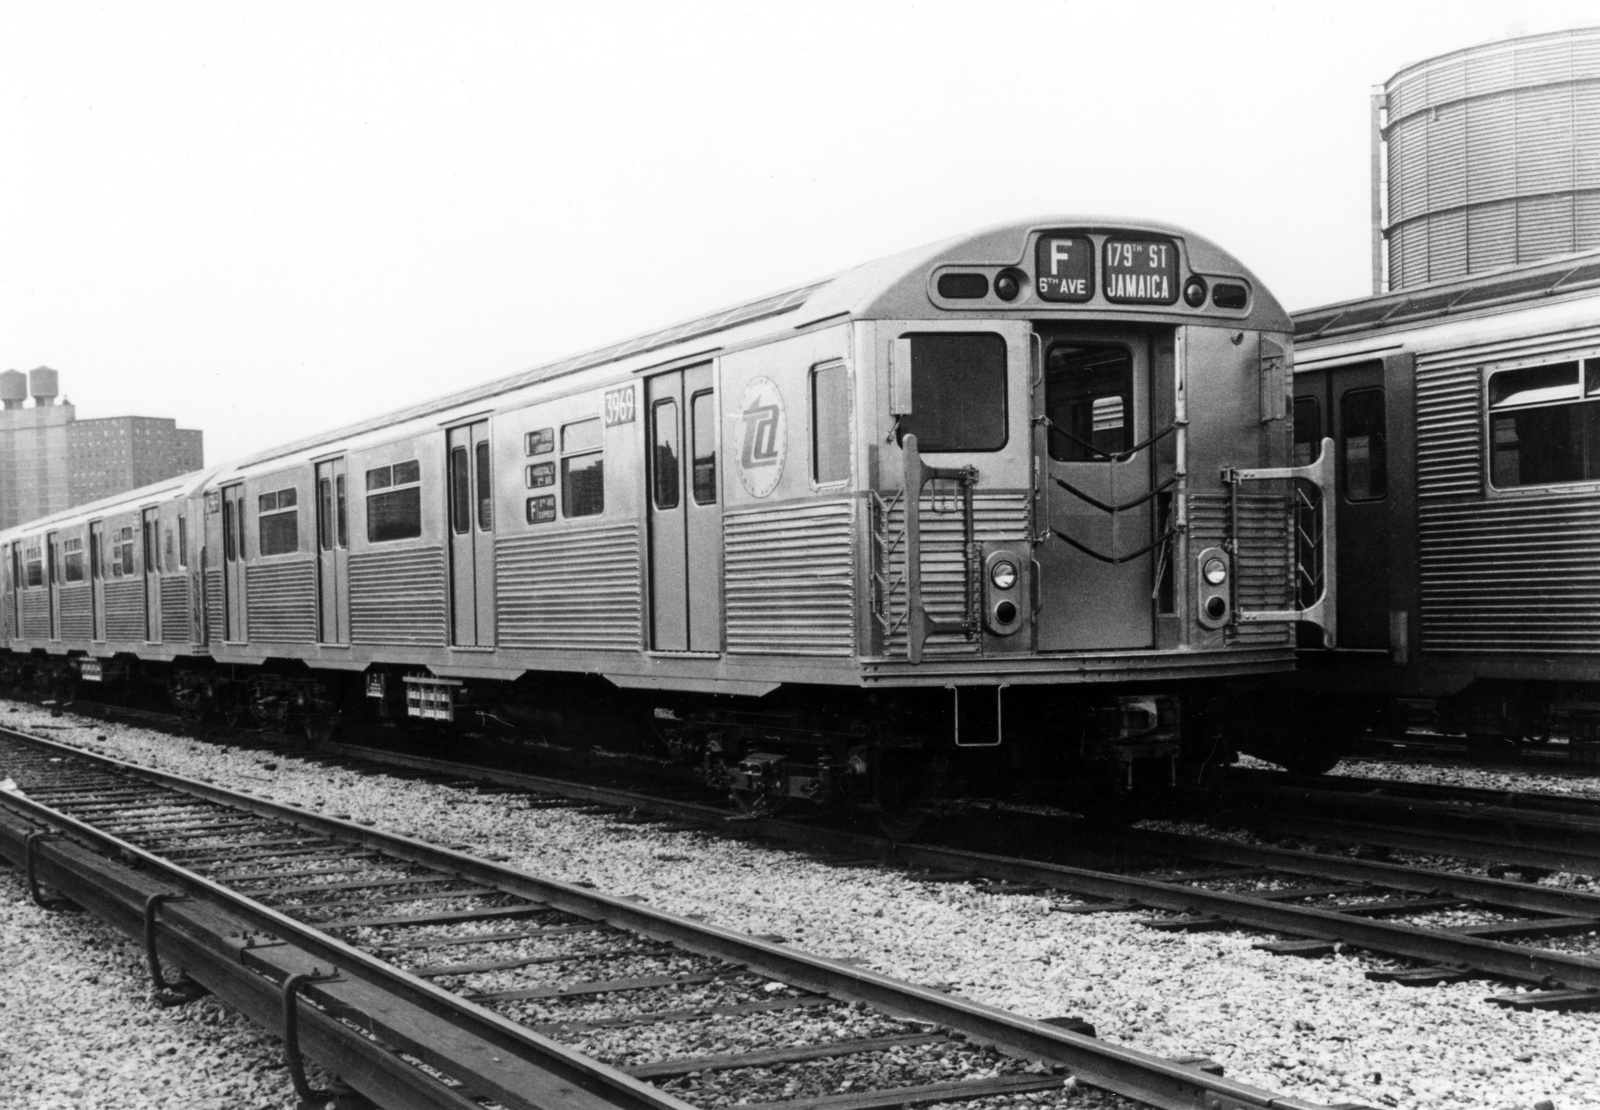 (273k, 1024x812)<br><b>Country:</b> United States<br><b>City:</b> New York<br><b>System:</b> New York City Transit<br><b>Location:</b> Coney Island Yard<br><b>Car:</b> R-38 (St. Louis, 1966-1967)  3969 <br><b>Photo by:</b> Ed Watson/Arthur Lonto Collection<br><b>Collection of:</b> Frank Pfuhler<br><b>Date:</b> 1966<br><b>Viewed (this week/total):</b> 0 / 716